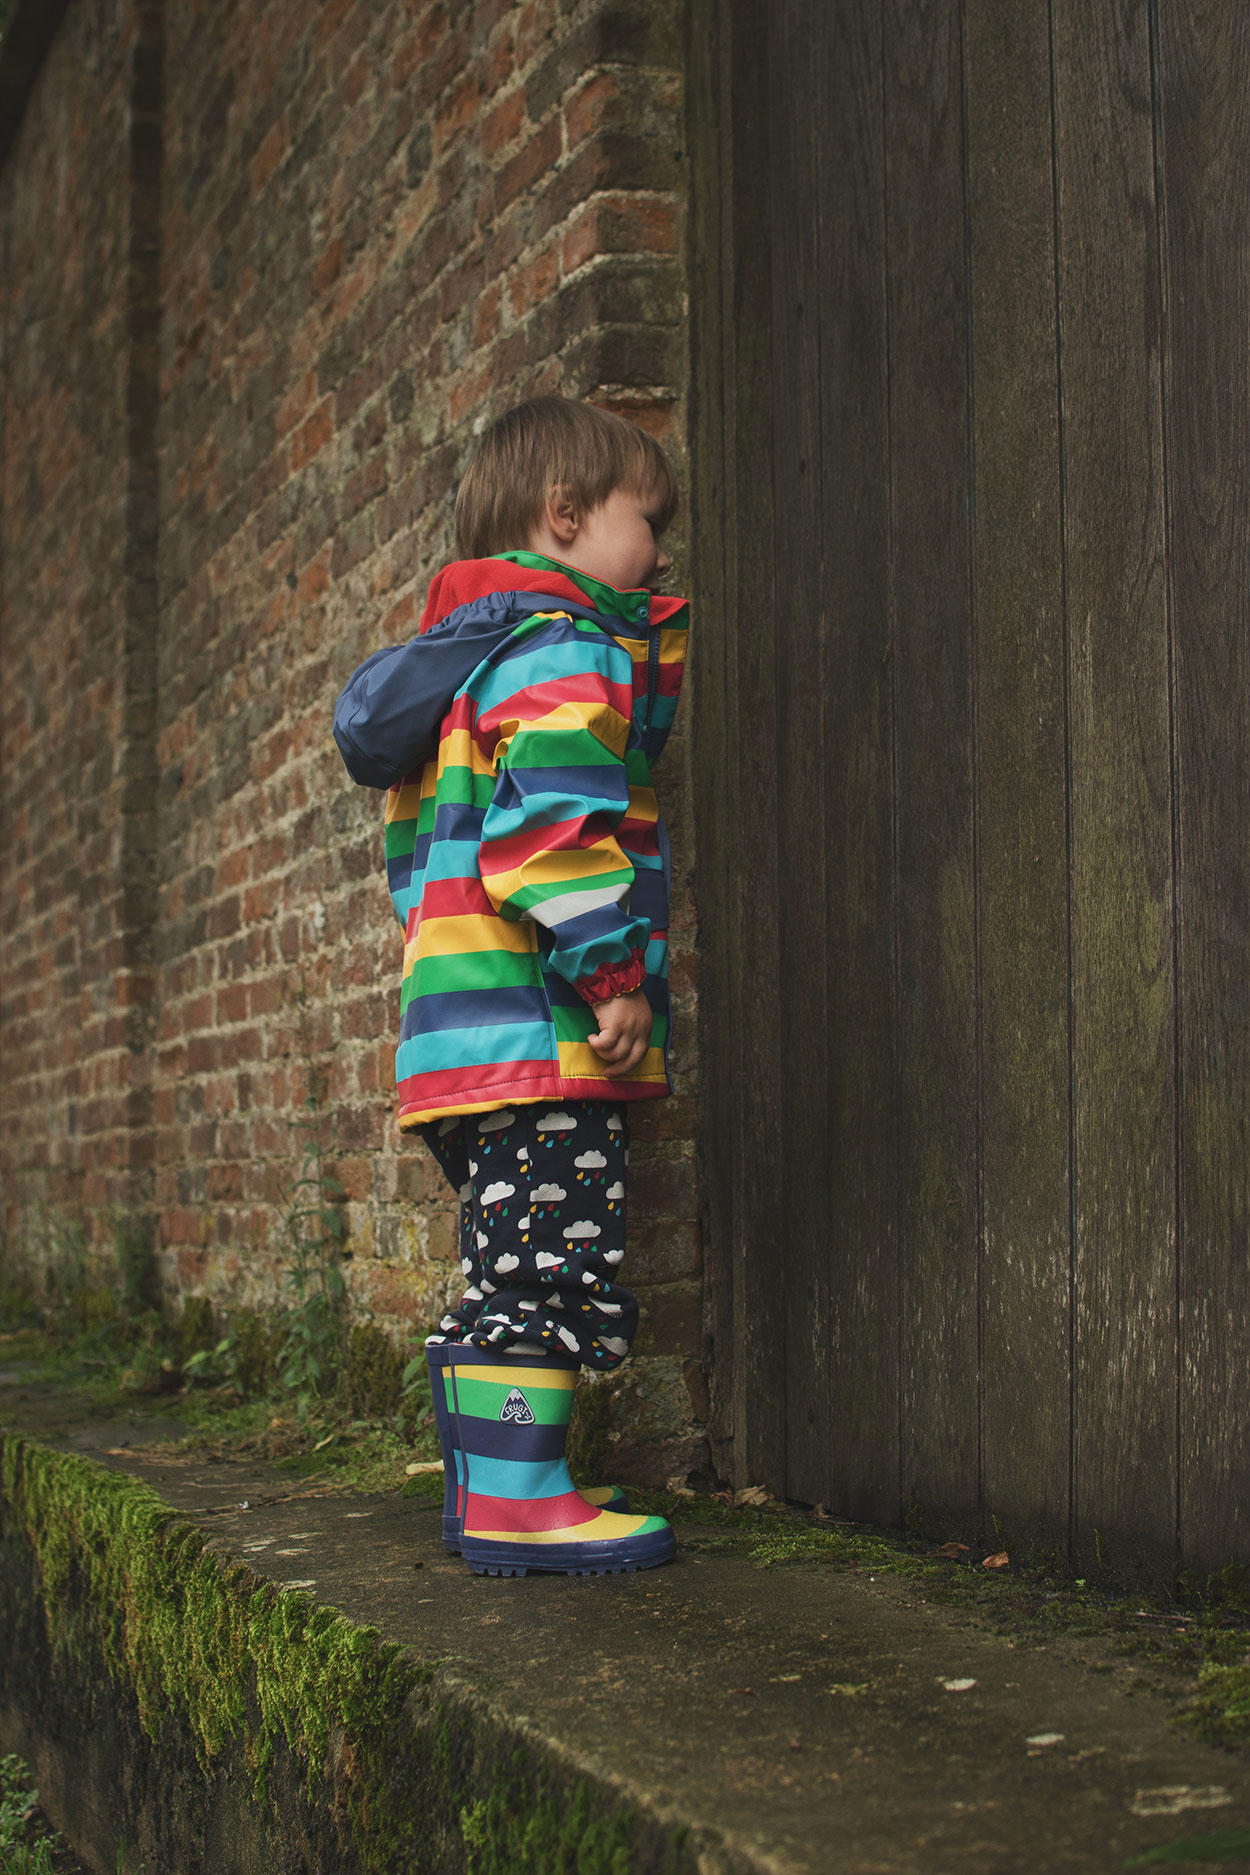 Jumping in muddy puddles wearing Frugi Circus of Colour Puddle-Buster rainbow raincoat and wellies, crawlers and applique t-shirt outdoors on a rainy Summers day